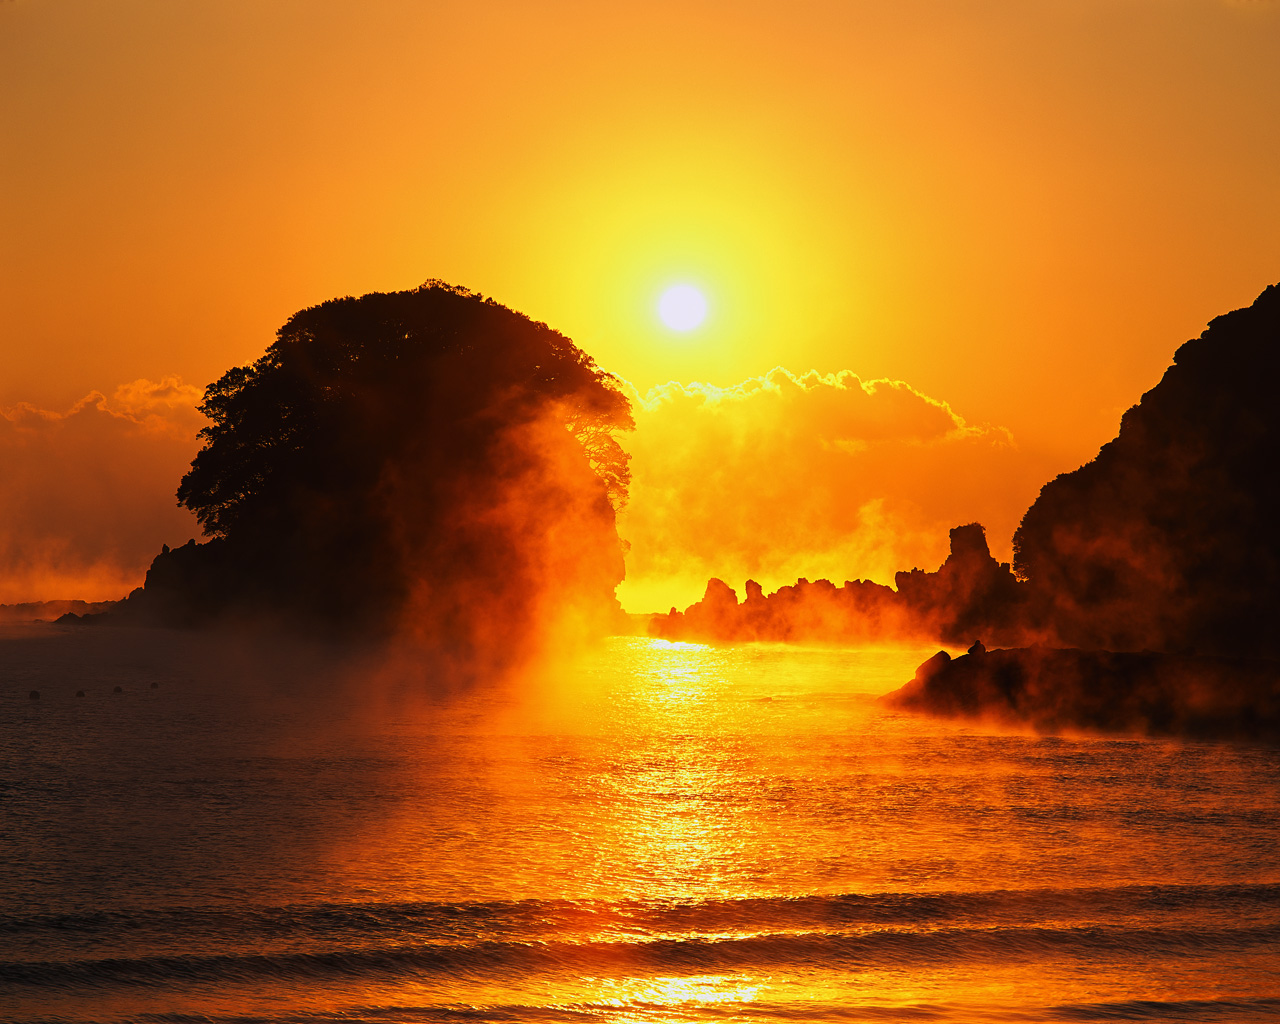 Strongly Sunrise in Japan Beach Wallpapers